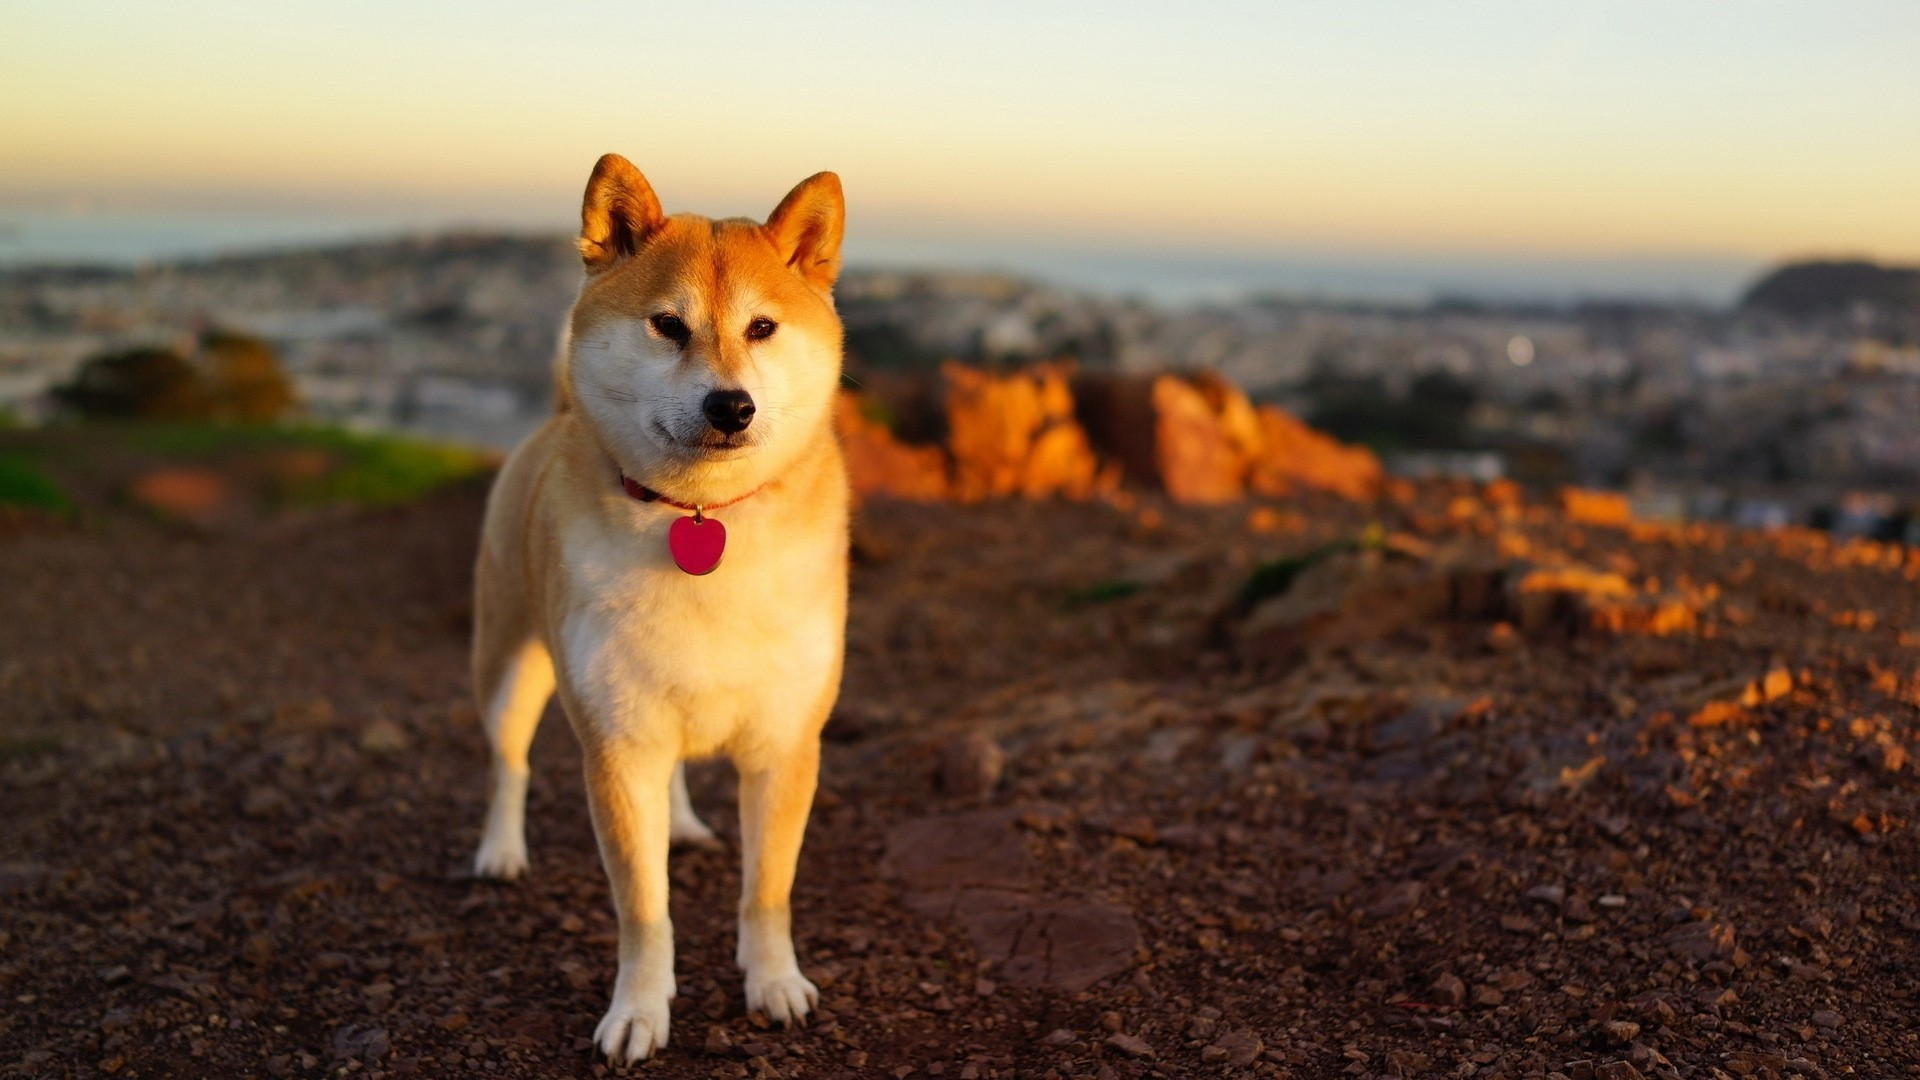 Animals Shiba Inu Dog Wallpaper Akita Inu Hd 262660 Hd Wallpaper Backgrounds Download